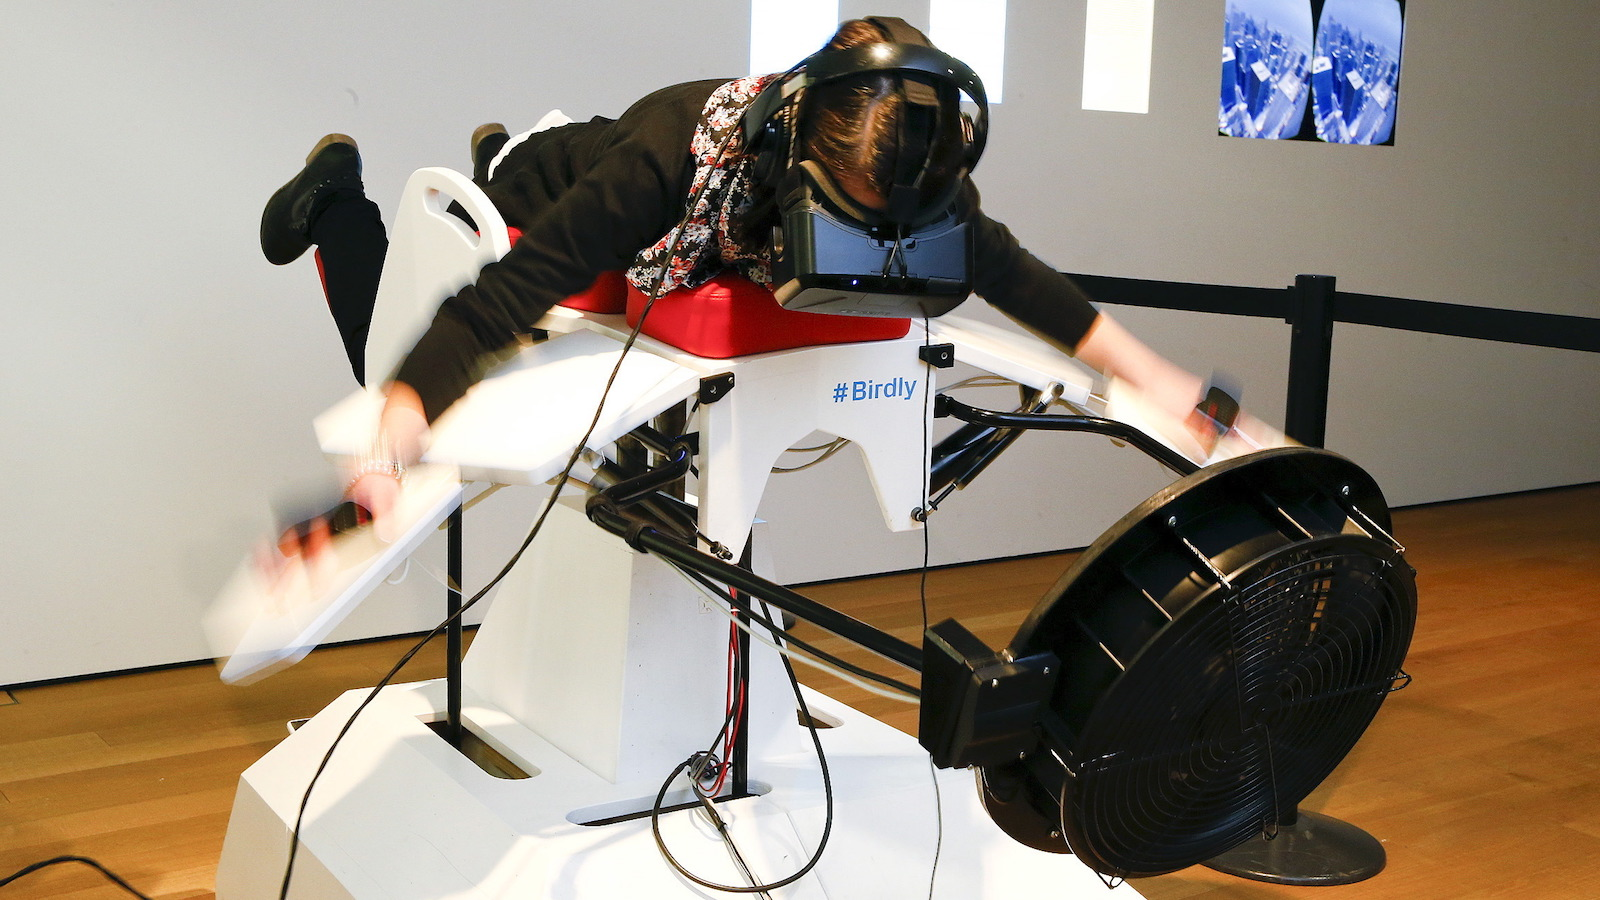 "A visitor tries the flight simulator Birdly at the exhibition ""Animated Wonderworlds"" at Museum fuer Gestaltung (Museum for Design) in Zurich, November 17, 2015. Birdly simulates the flight of a red kite over New York City, controlled by the entire body of the user. The flight simulator was developed by scientists at Zurich University of the Arts. REUTERS/Arnd Wiegmann - RTS7JXB"